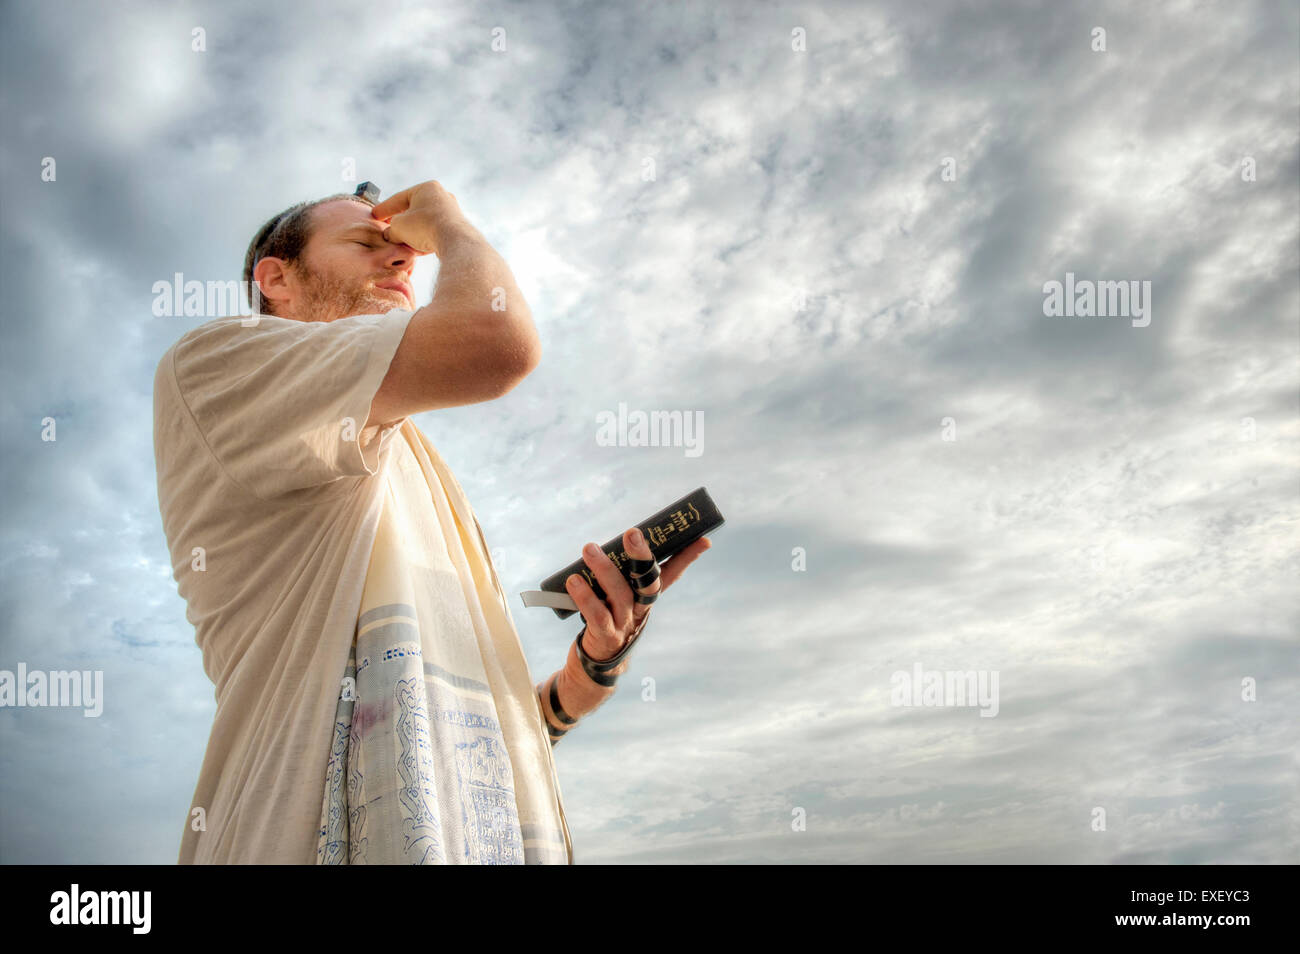 Jewish man engaged in morning prayers. - Stock Image